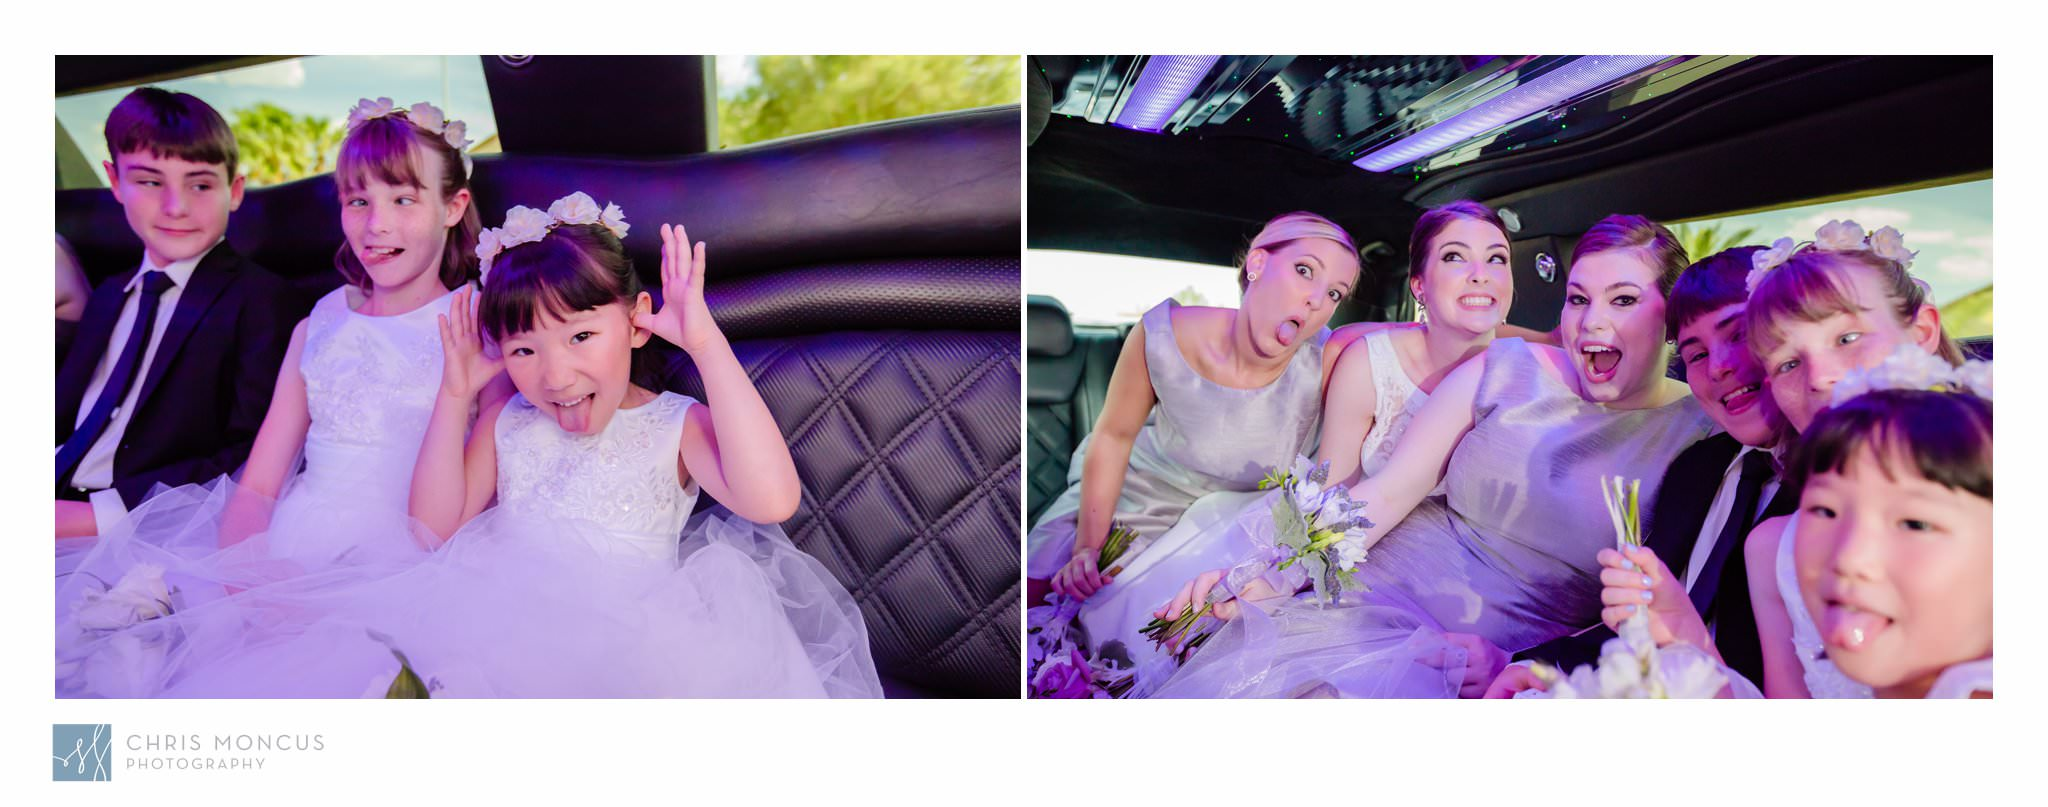 Bride in Limo Las Vegas Wedding Transportation